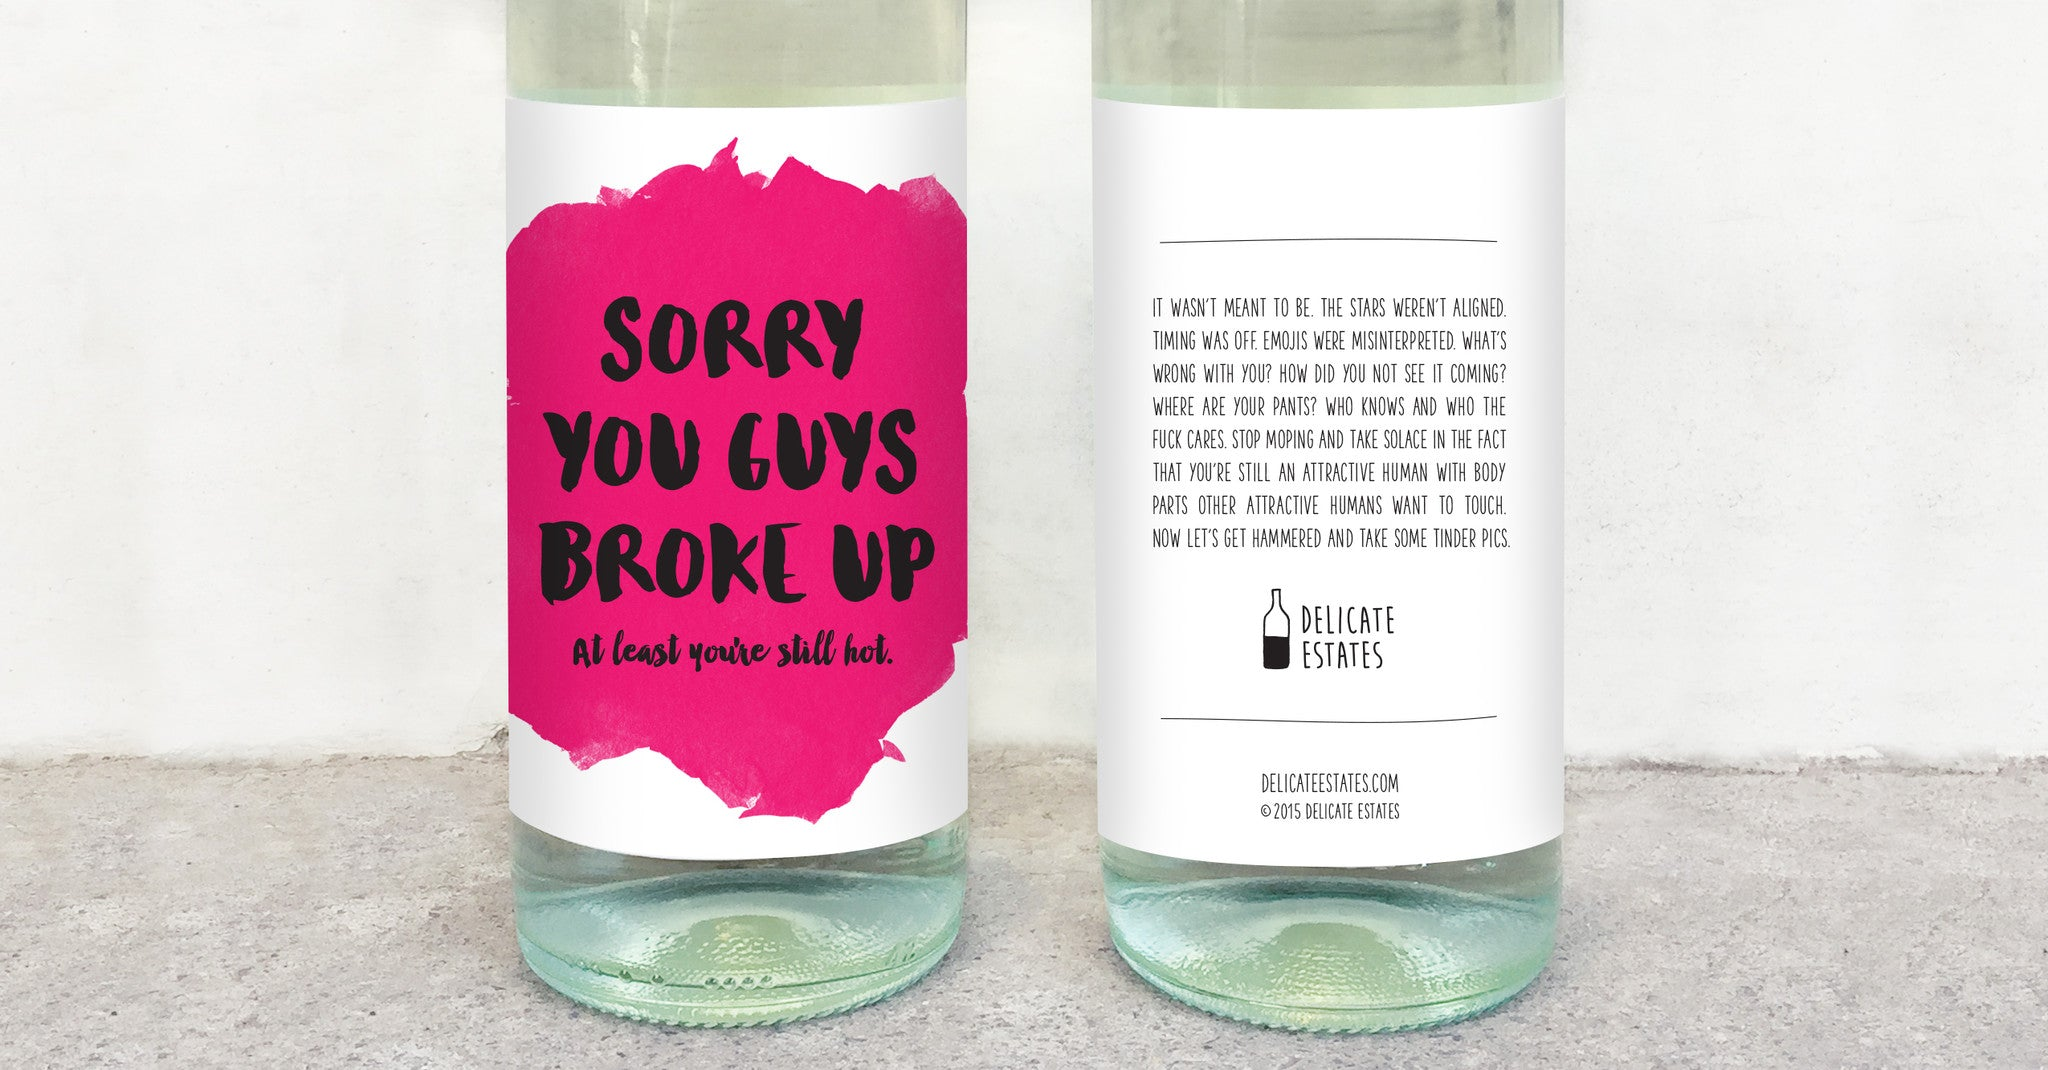 break up wine label greeting card delicate estates at least you're still hot